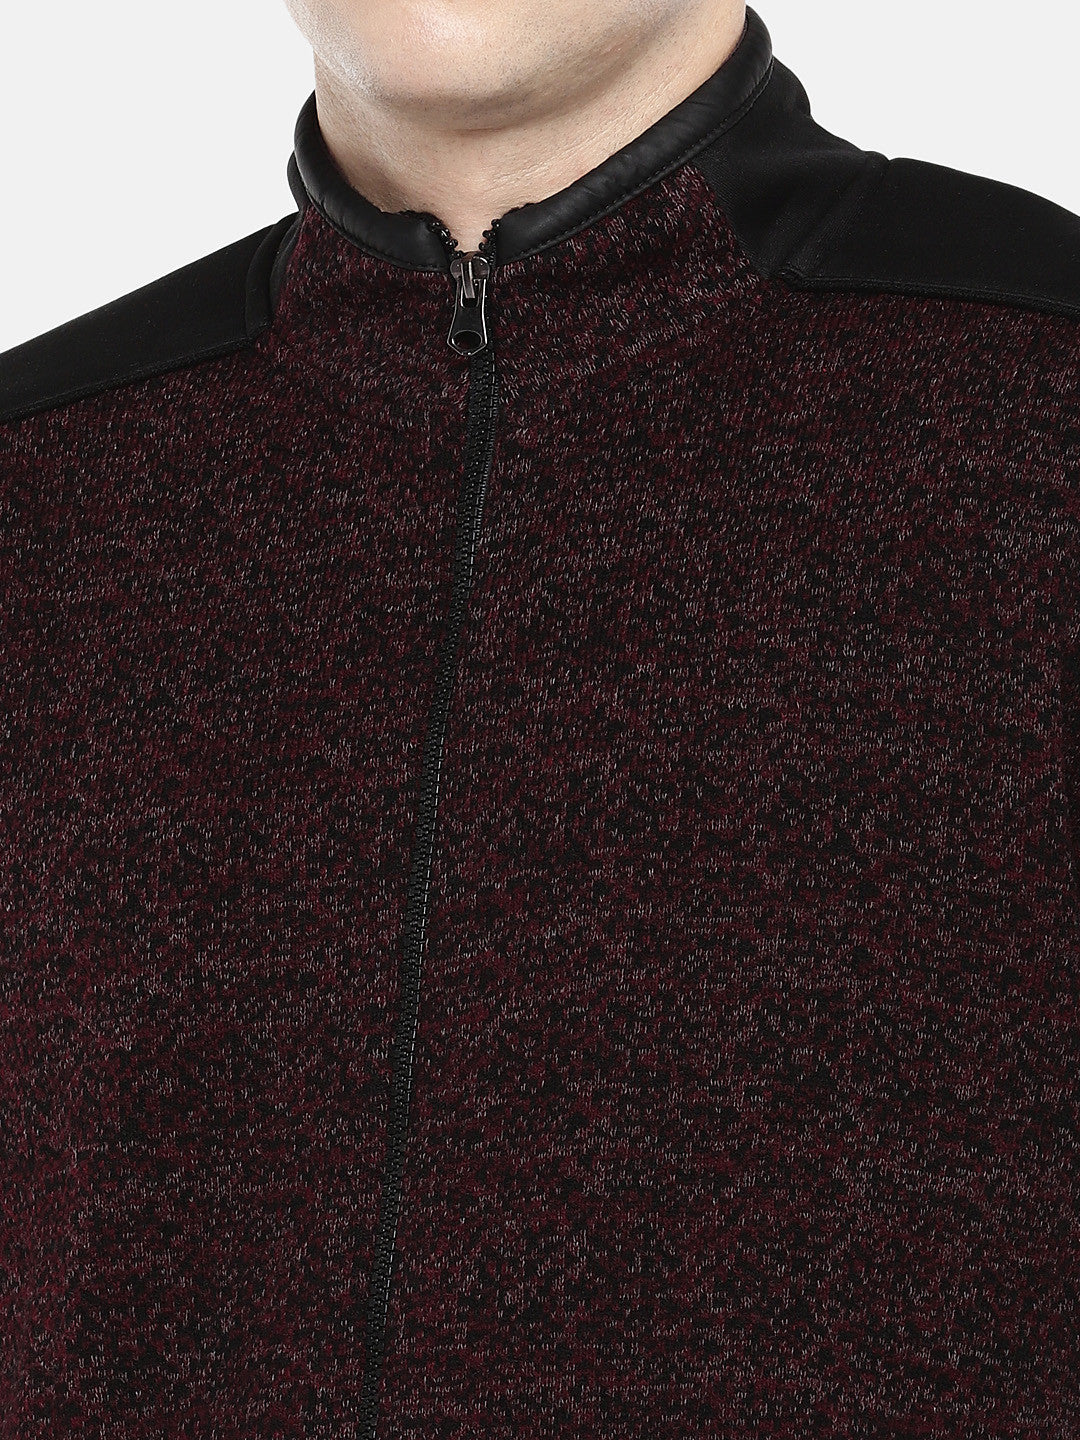 Maroon Self Design Tailored Jacket-5